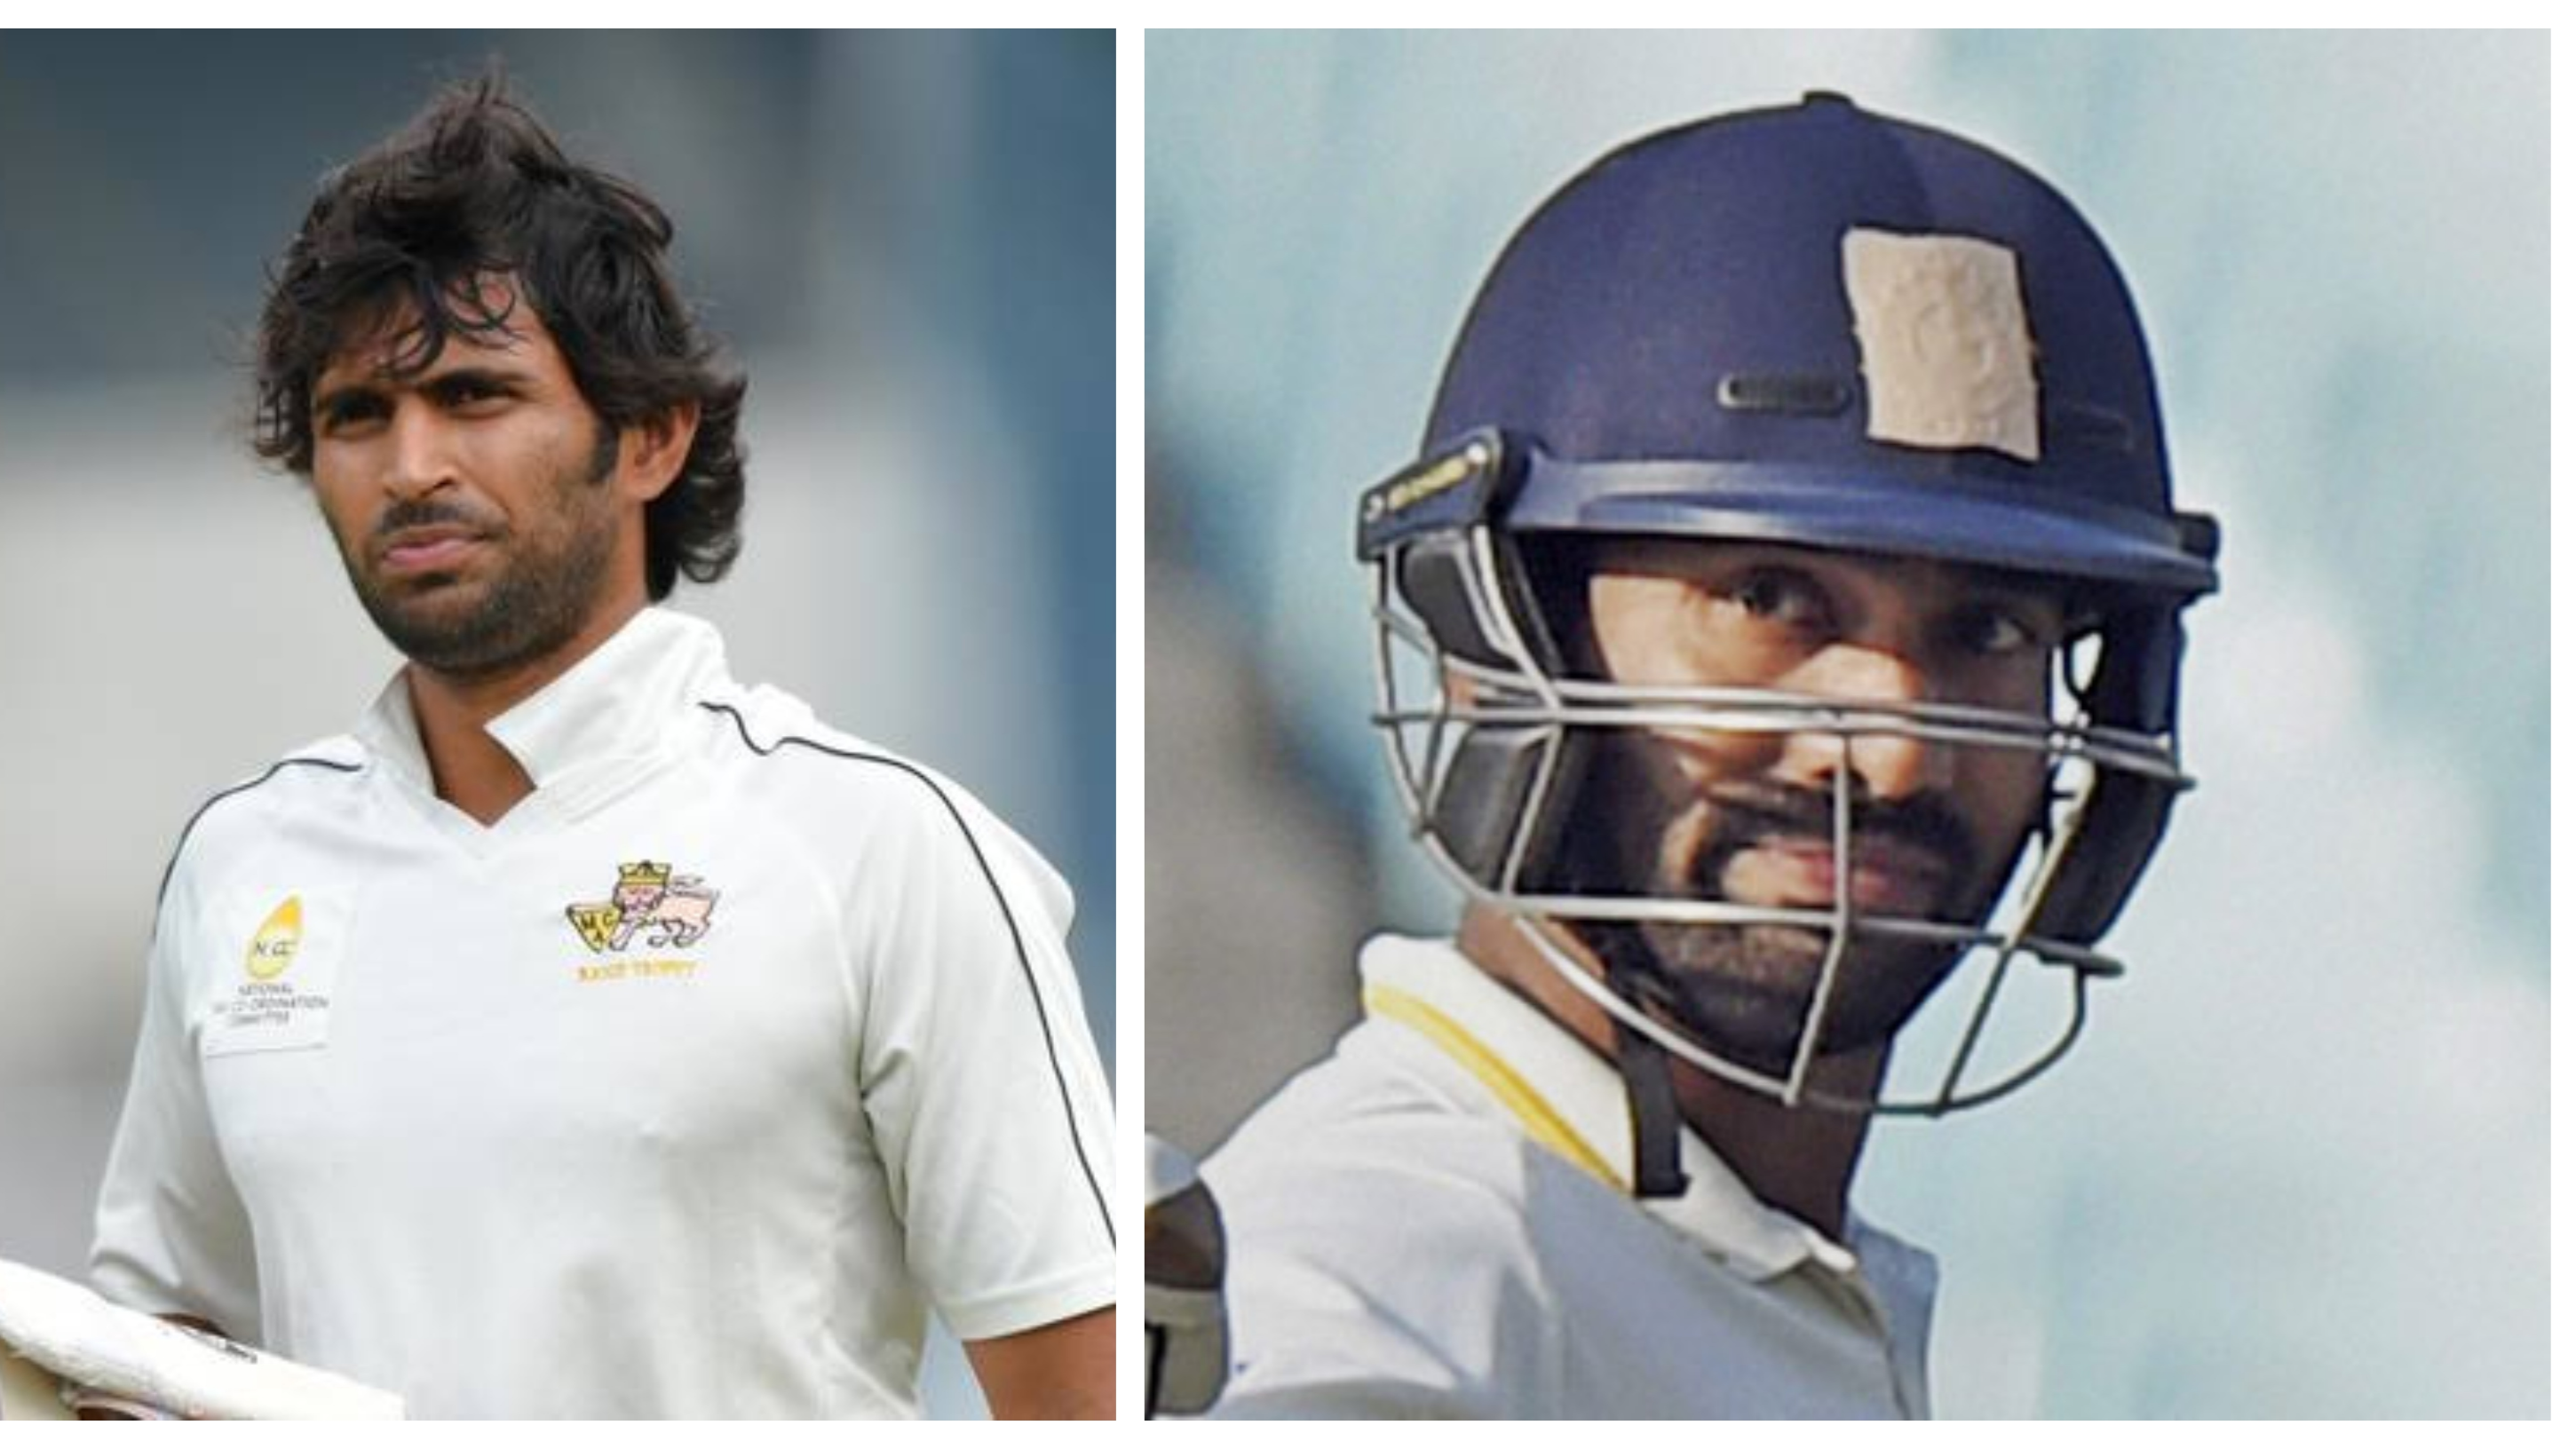 ENG vs IND 2018: The consistency and maturity has come in but he is still the same Dinesh Karthik, says Abhishek Nayar